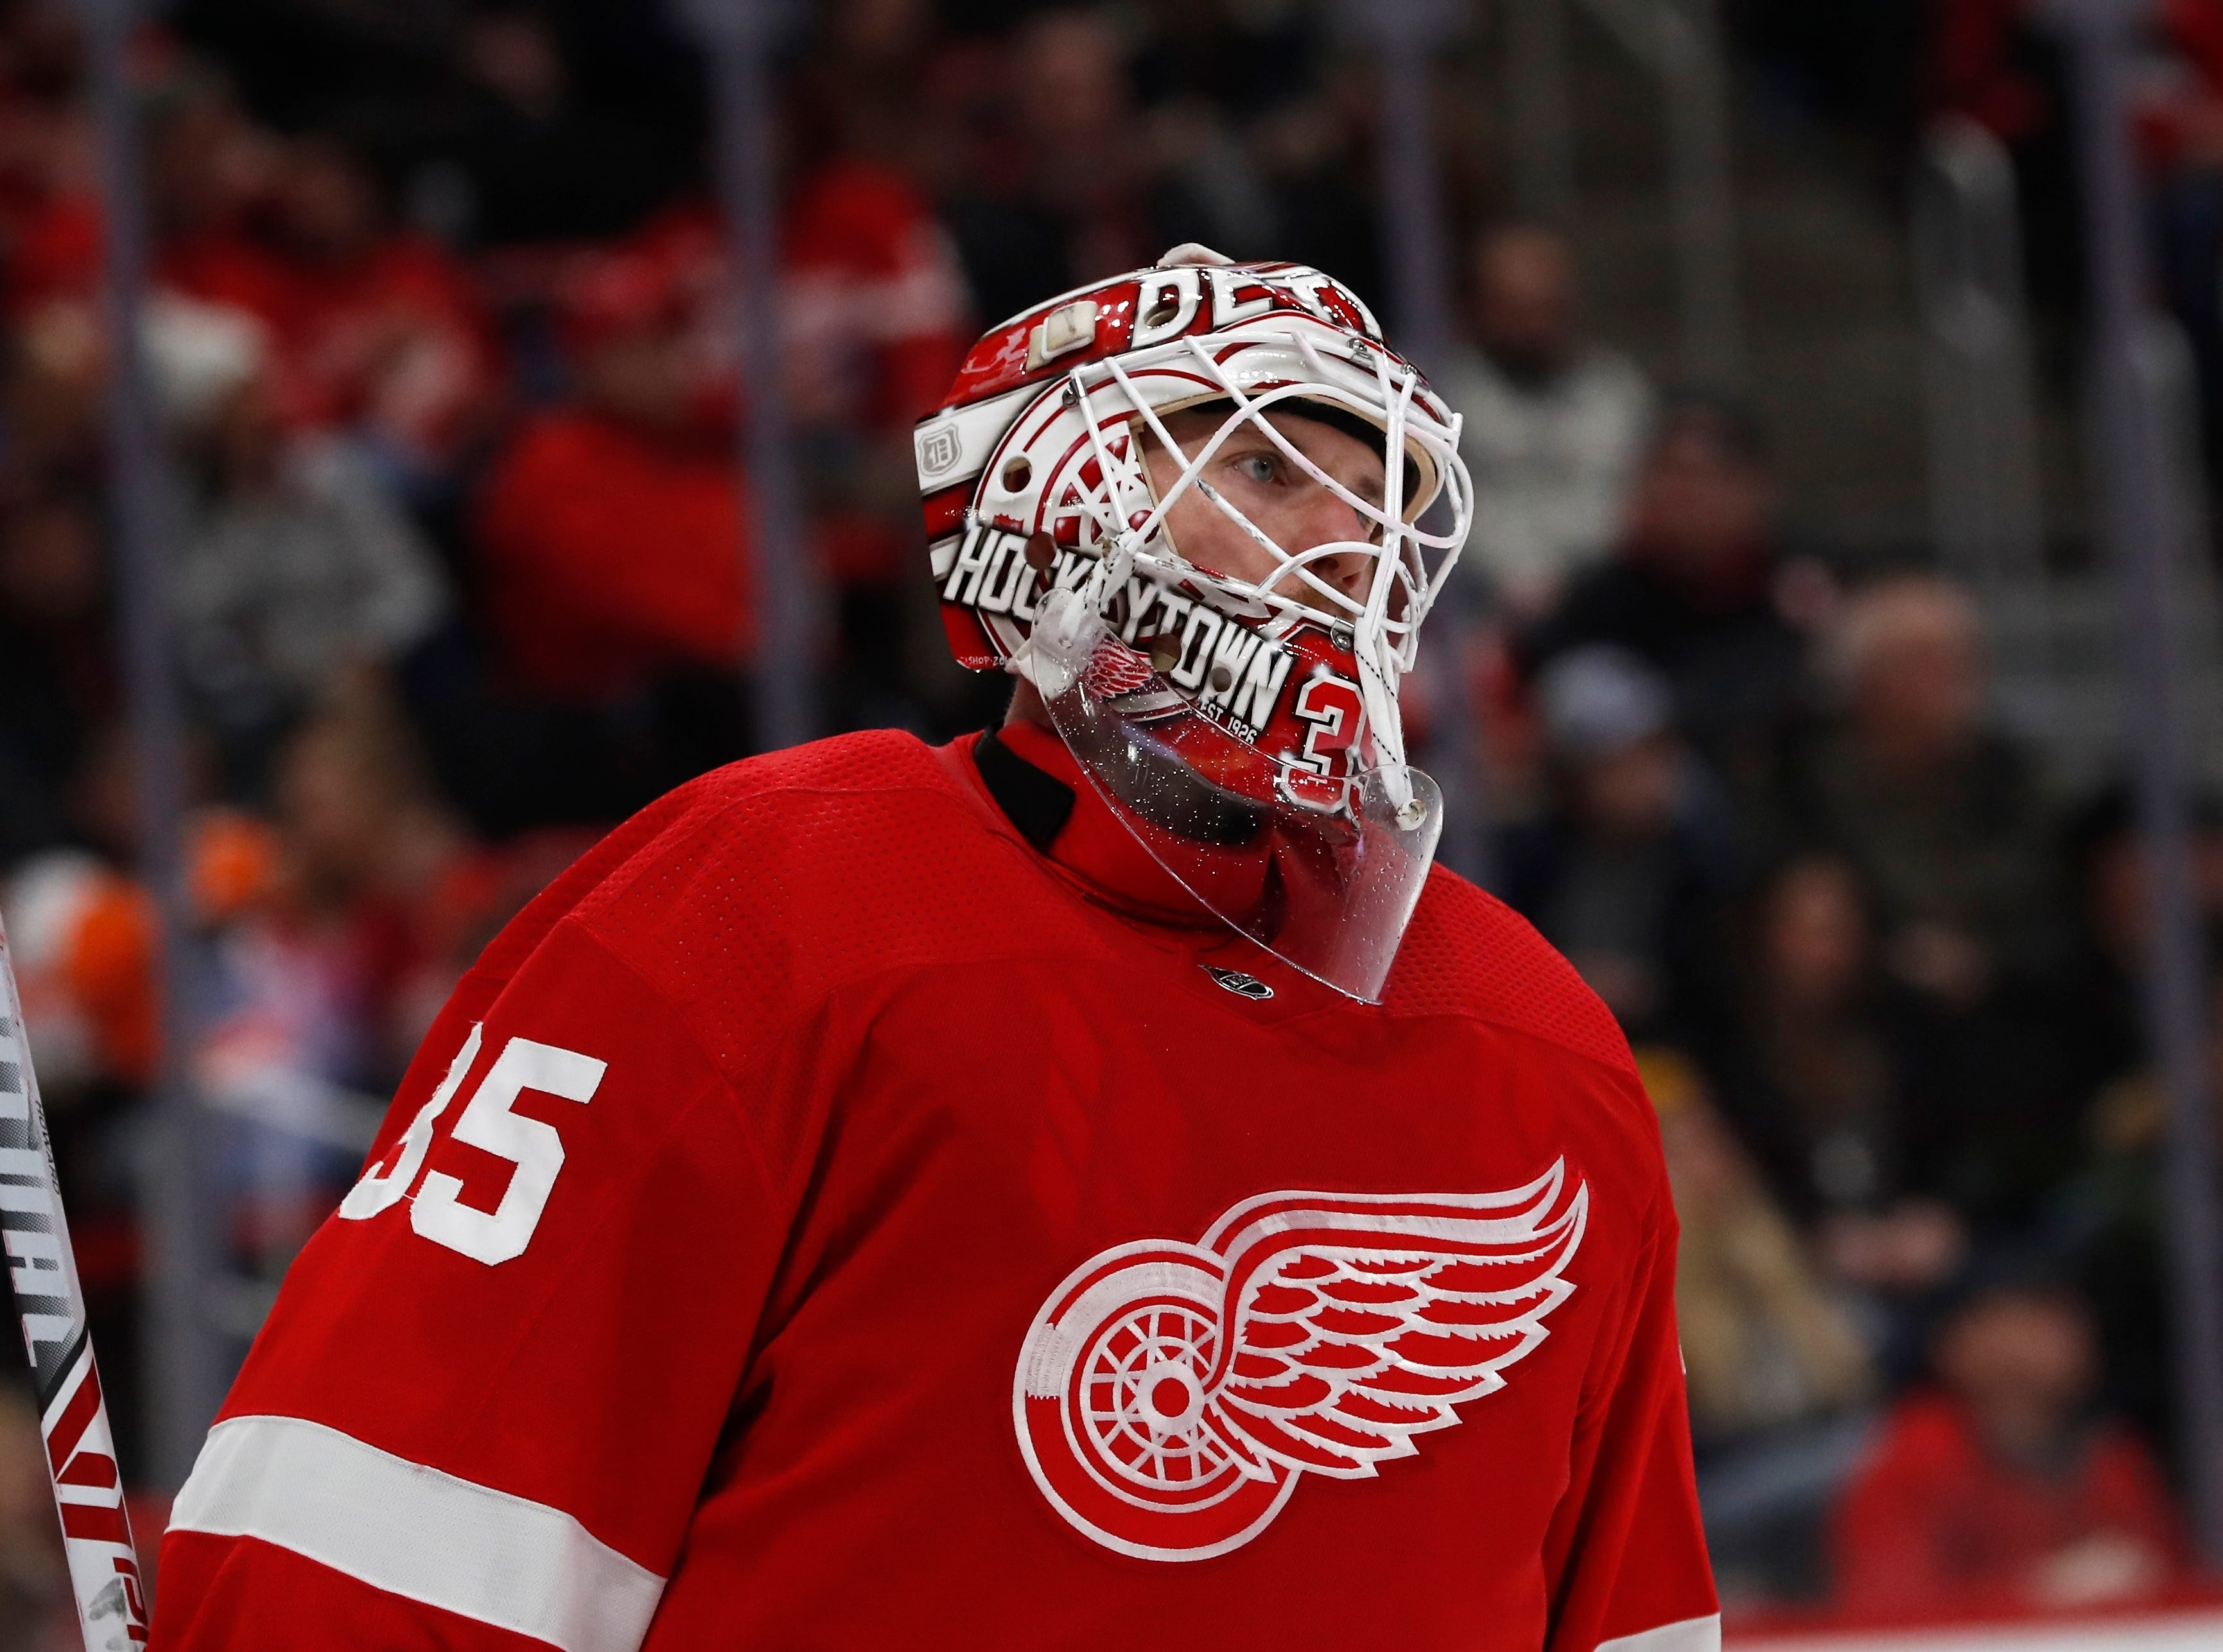 Detroit Red Wings goaltender Jimmy Howard skates during the third period.